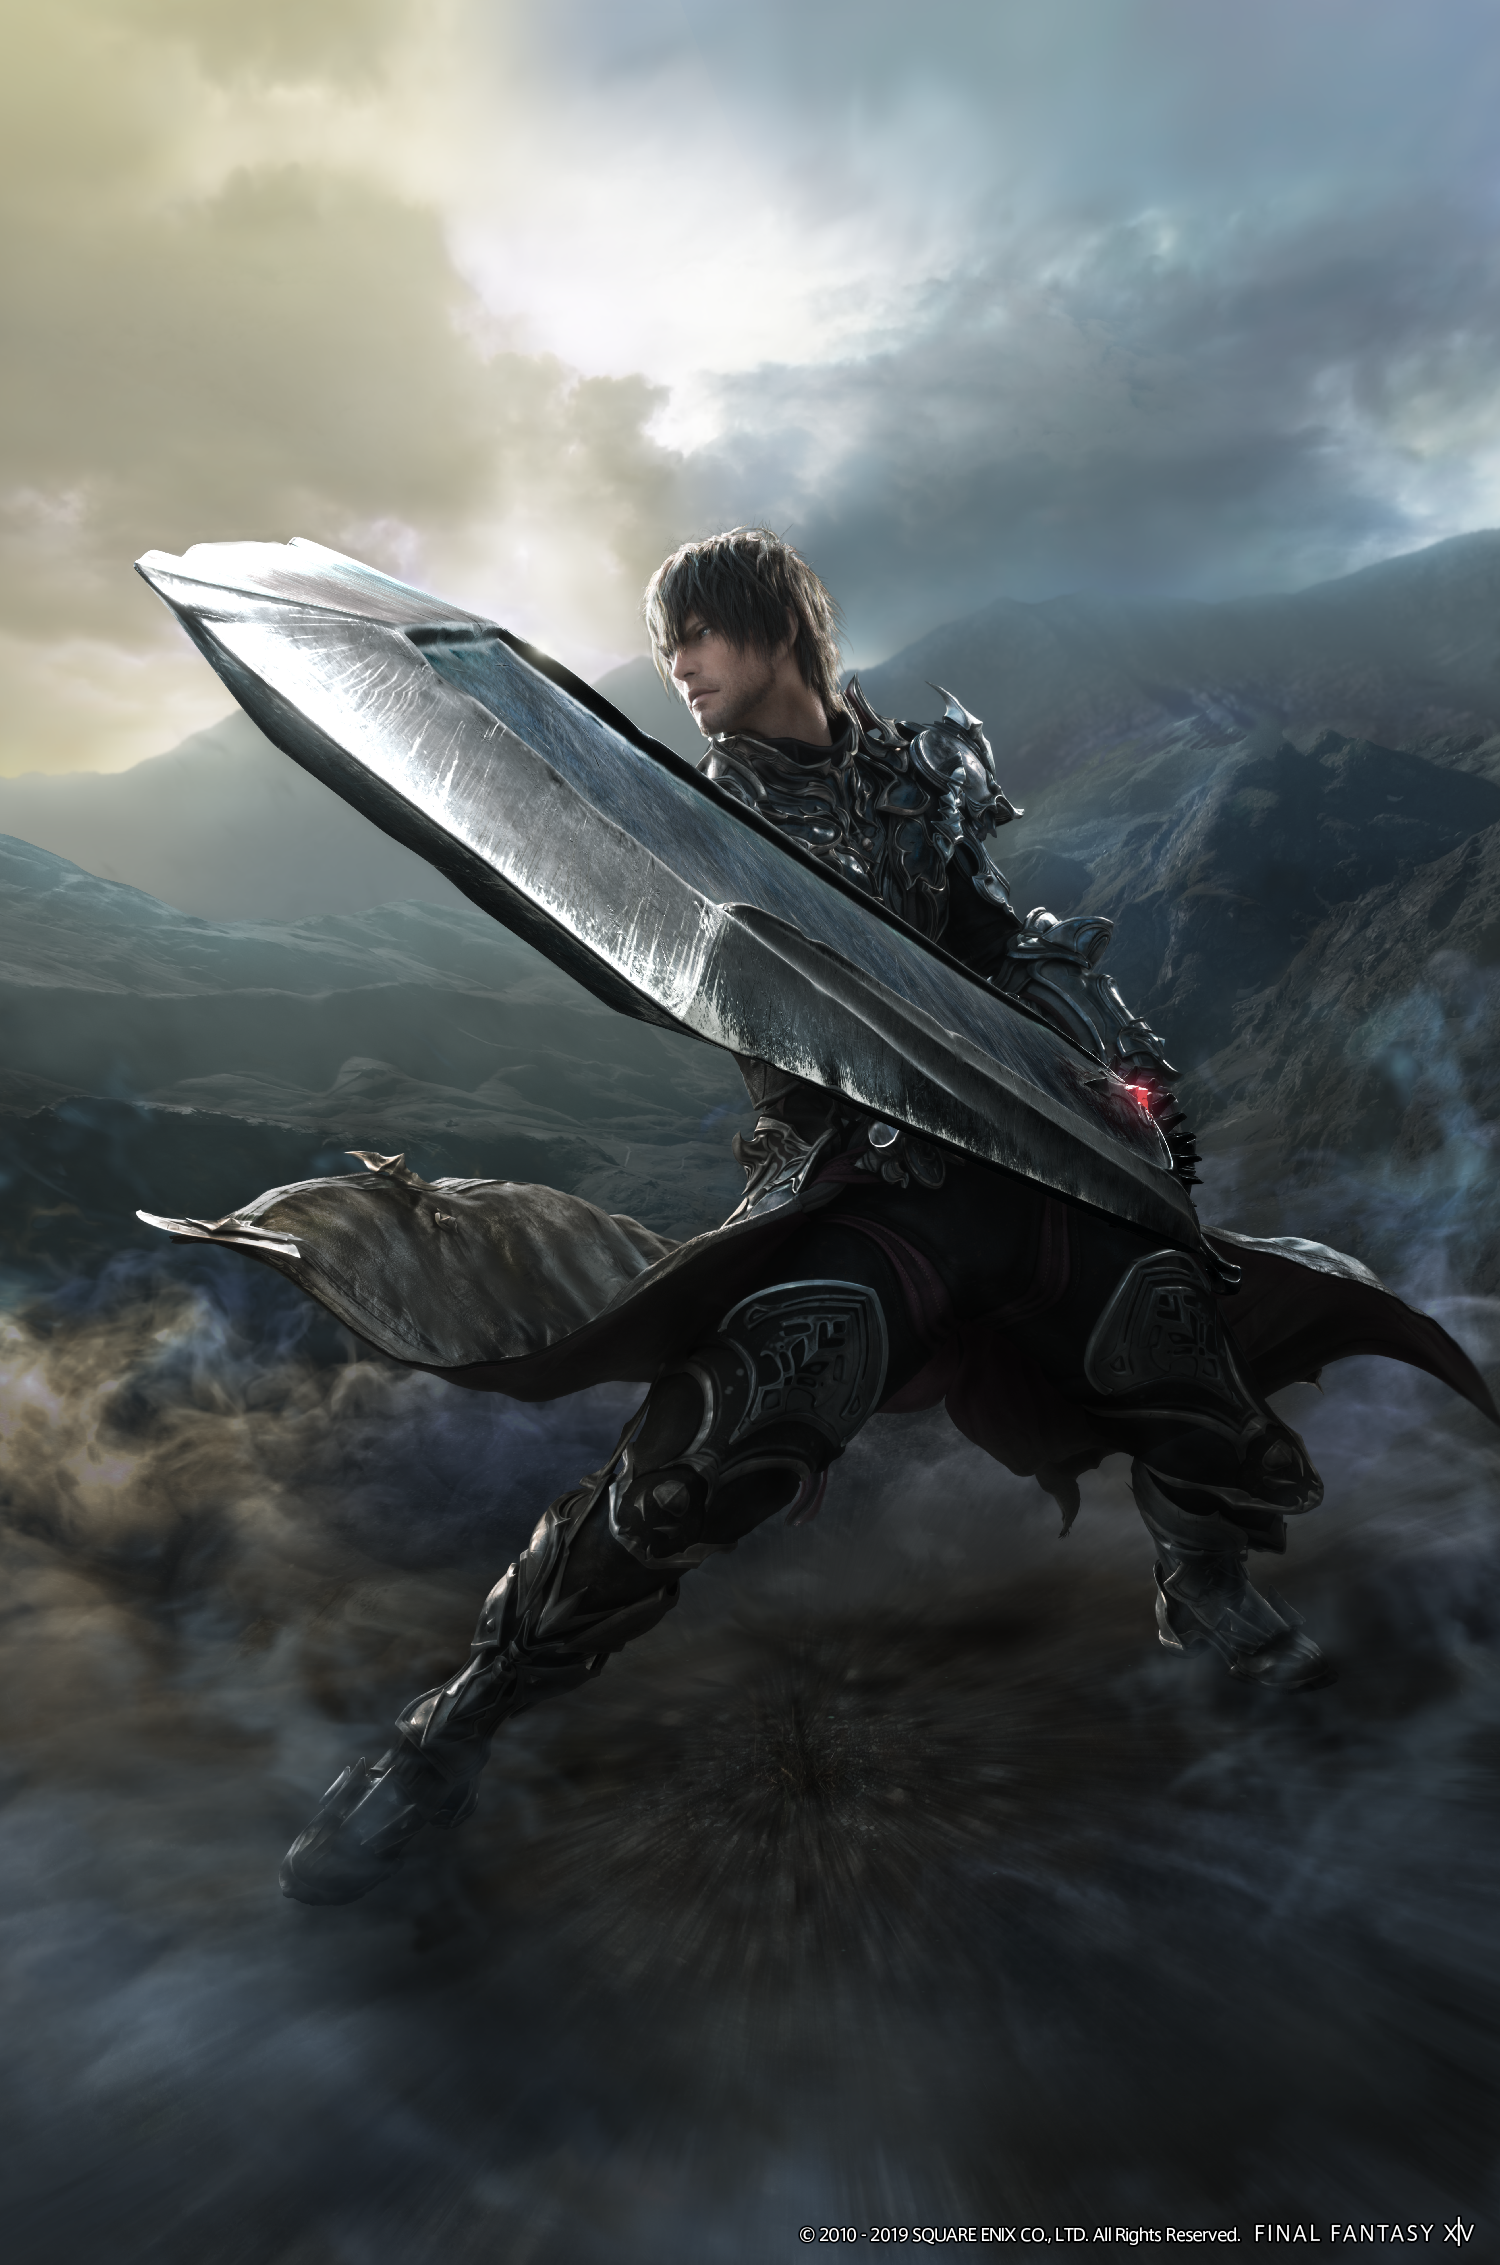 Final Fantasy 14 Reddit The following is a list of allusions present in final fantasy xiv. wallpaper games for iphone